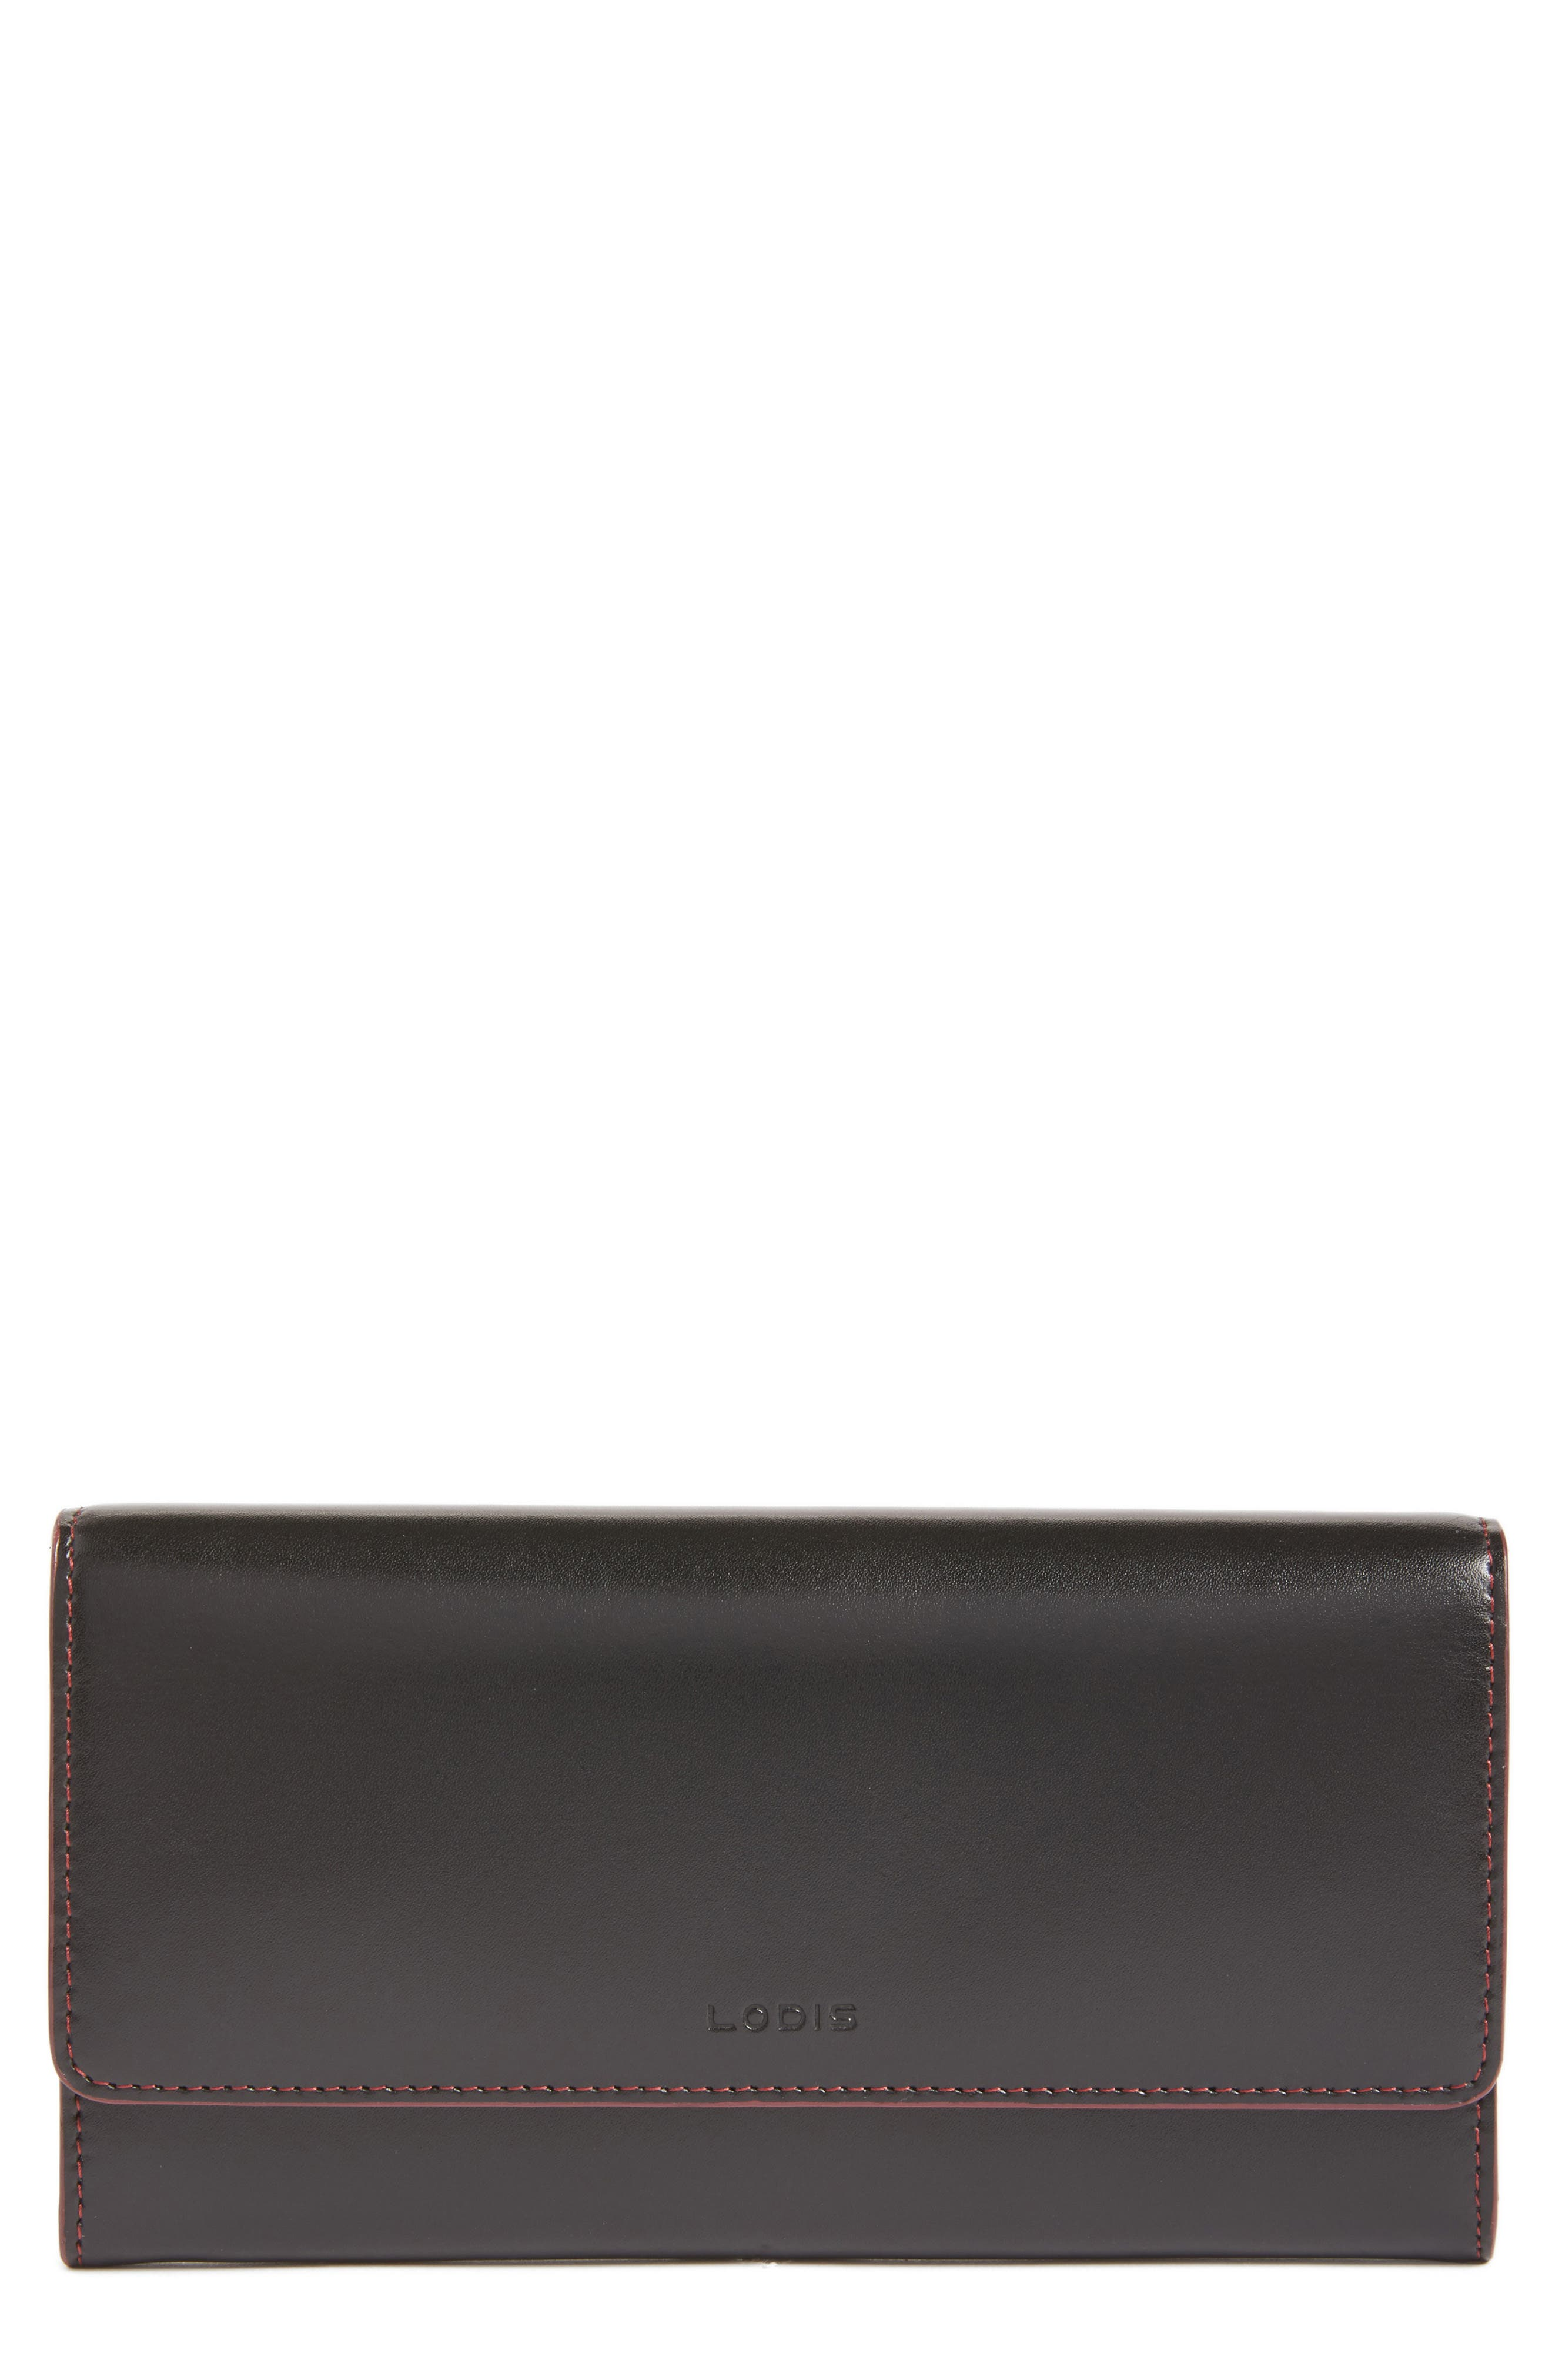 Lodis Audrey- Cami RFID Leather Clutch Wallet